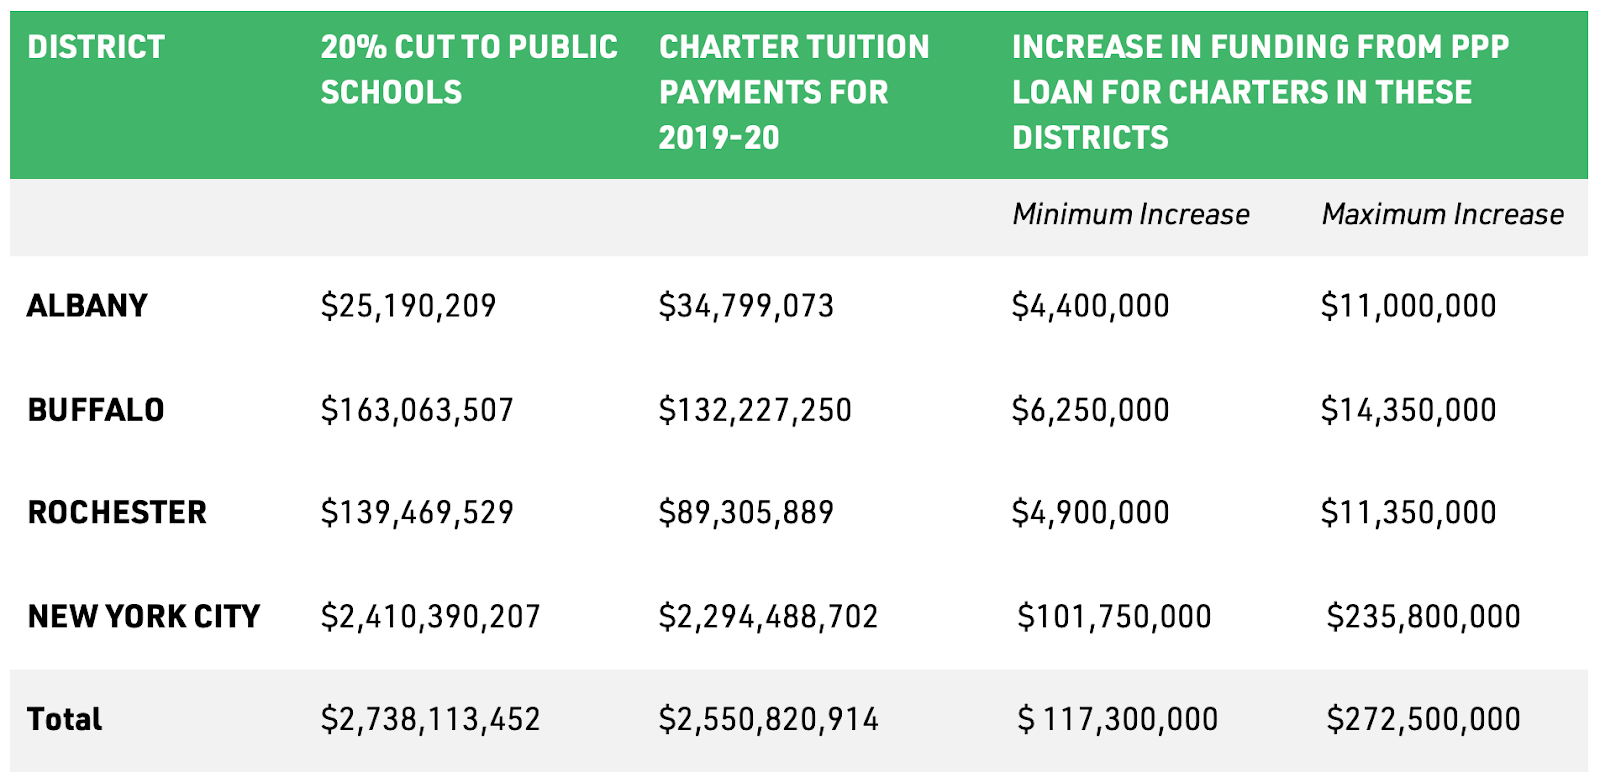 NY Public Schools Mandated to Pay Charter Tuition in Full, Even as They Face 20% Cuts 2